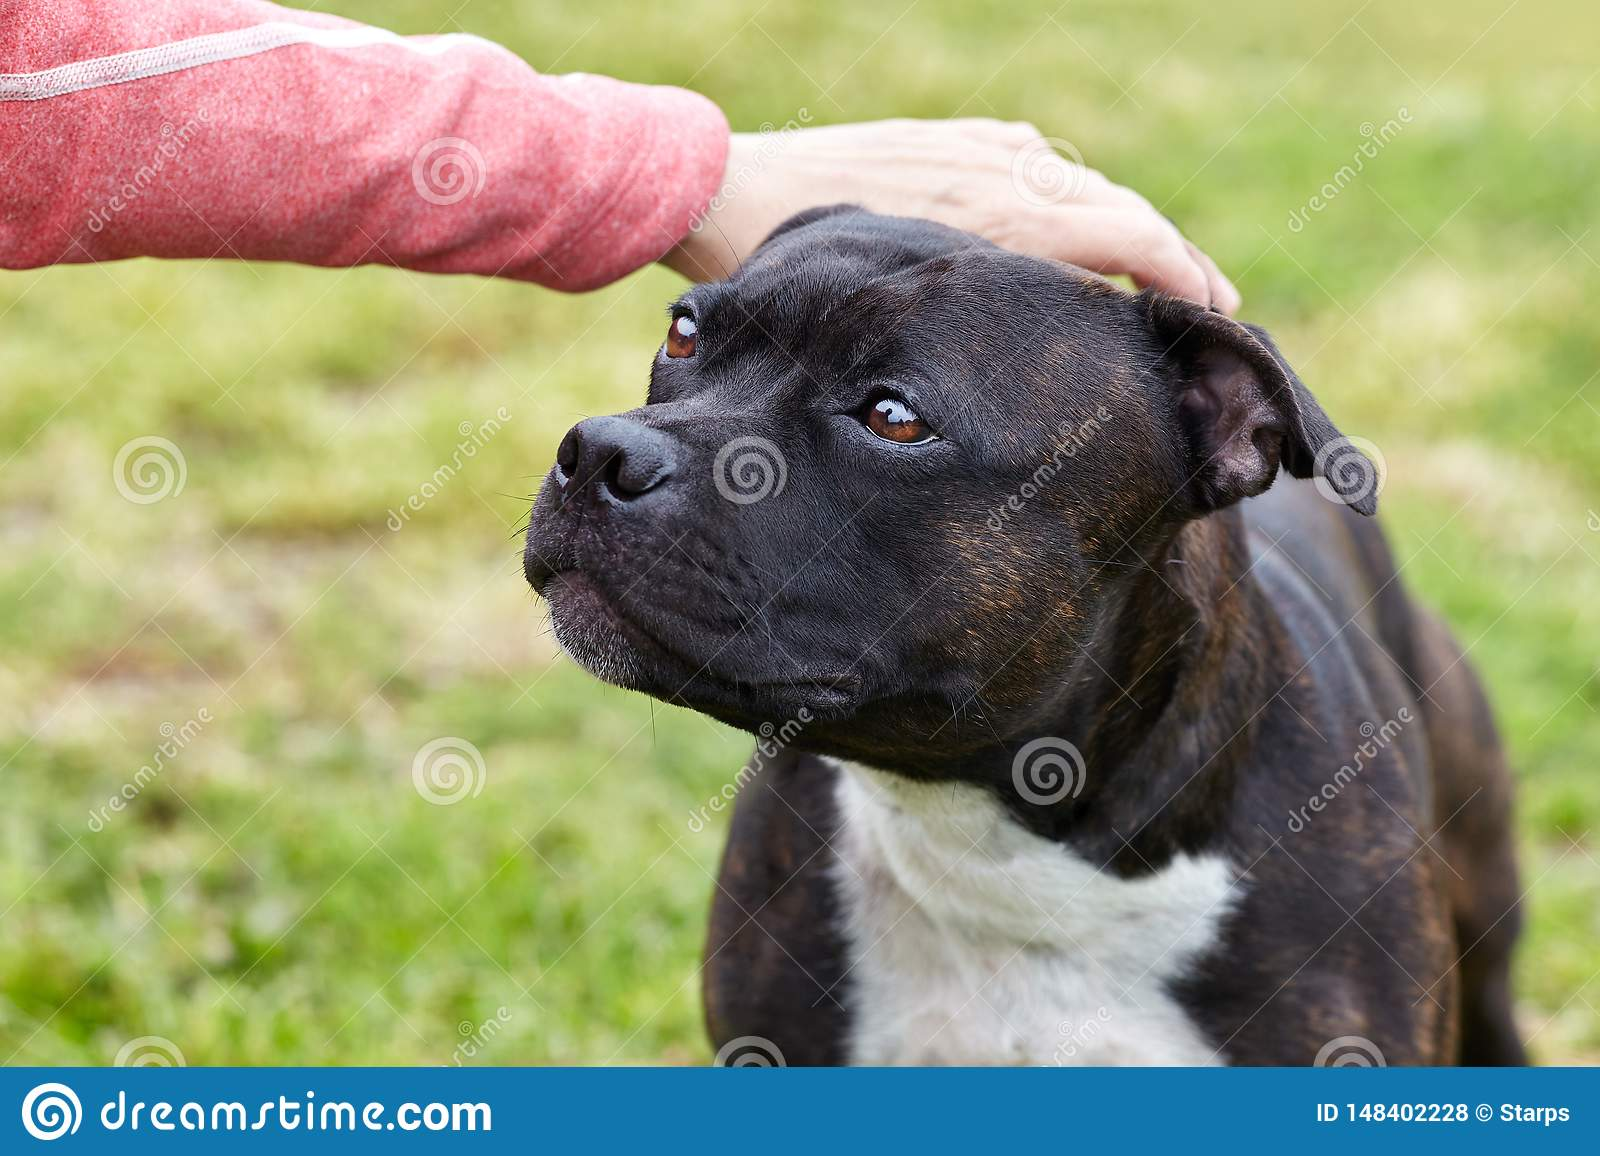 The hand stroking the dog head. Cute dog face looking for person with love and humility. Concept of adopting stray dogs.